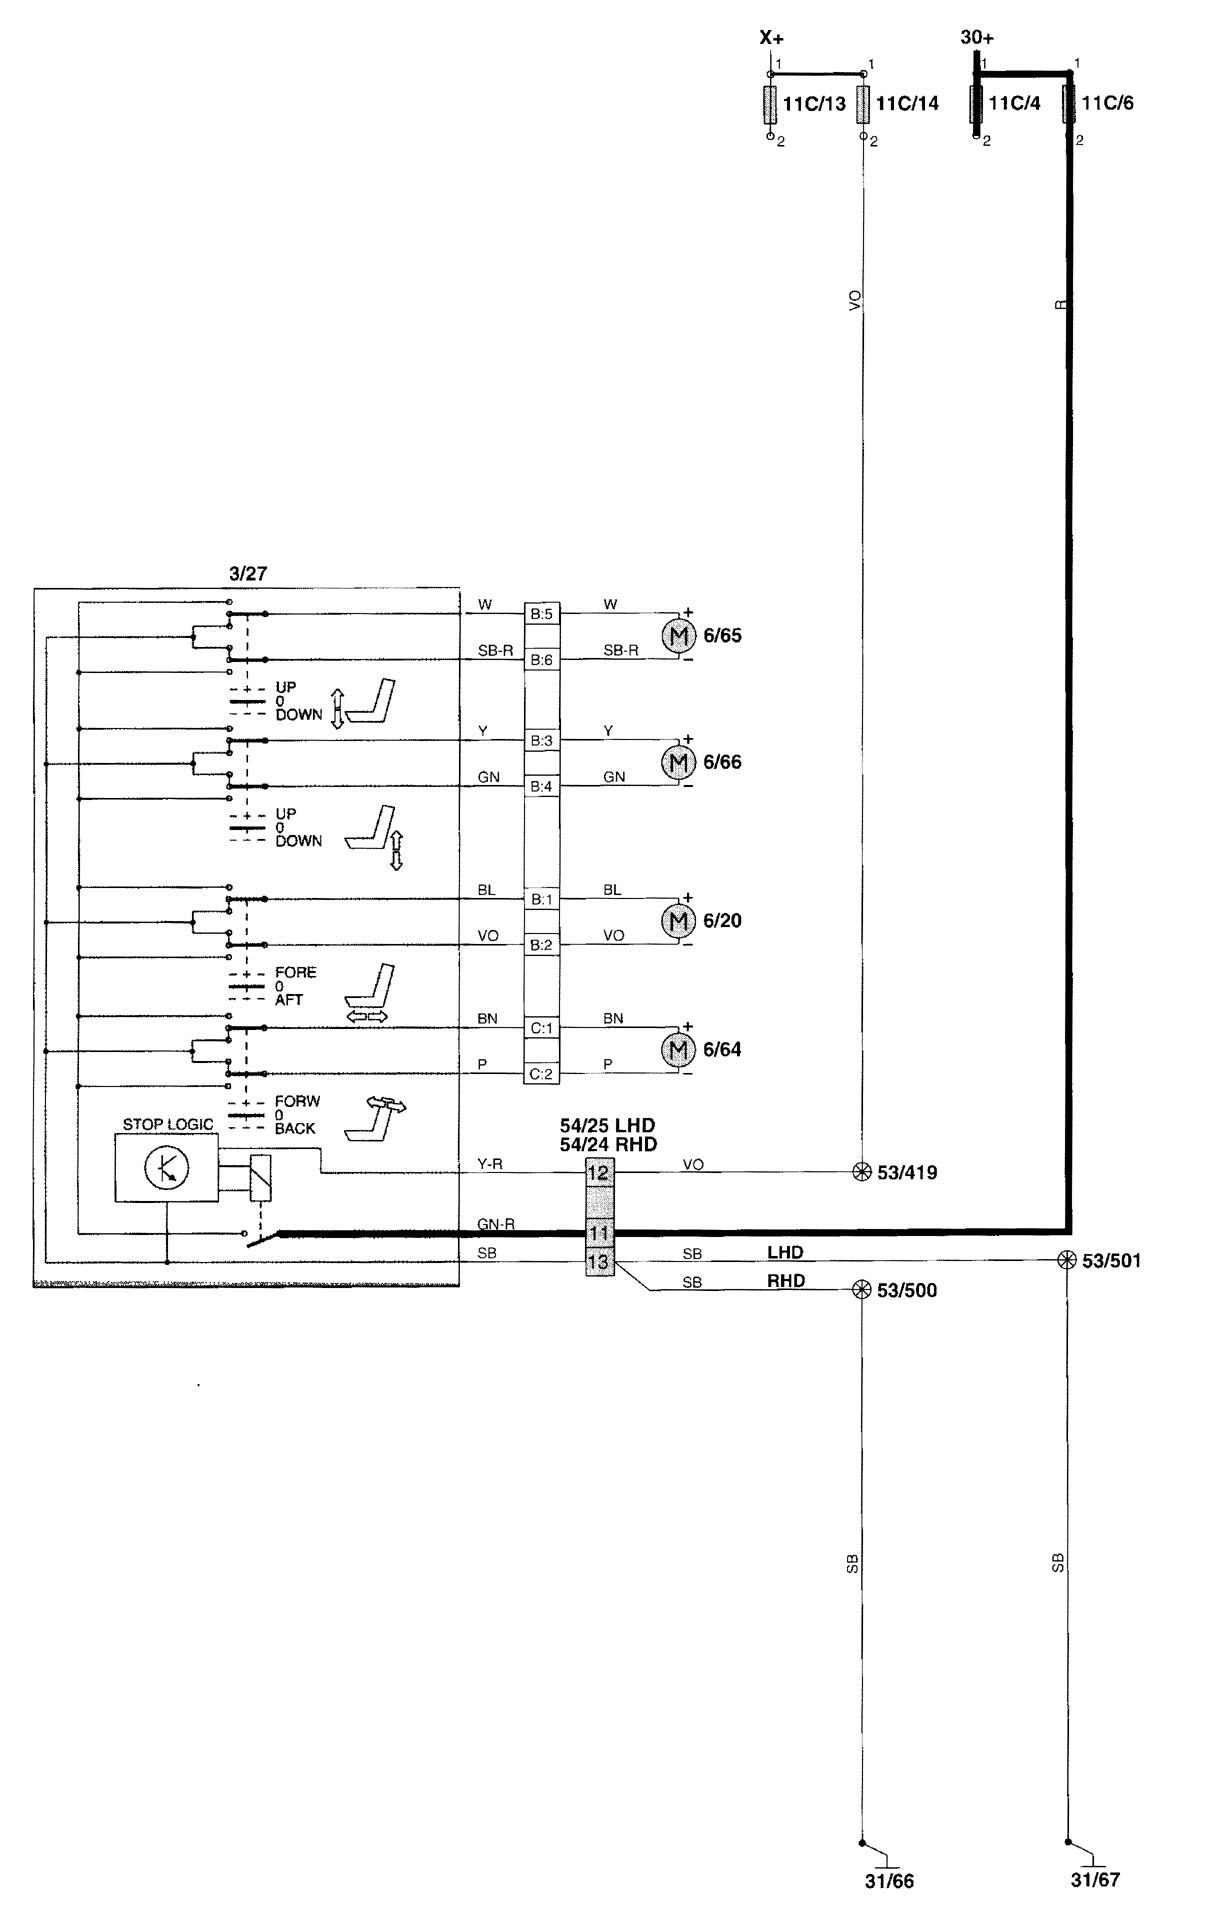 Volvo S60 Window Wiring Diagram Enthusiast Diagrams Basic Electrical Wiring Diagrams Wire 2002 F53 04 Ford F 250 Diesel Engine Basic Electrical Stove